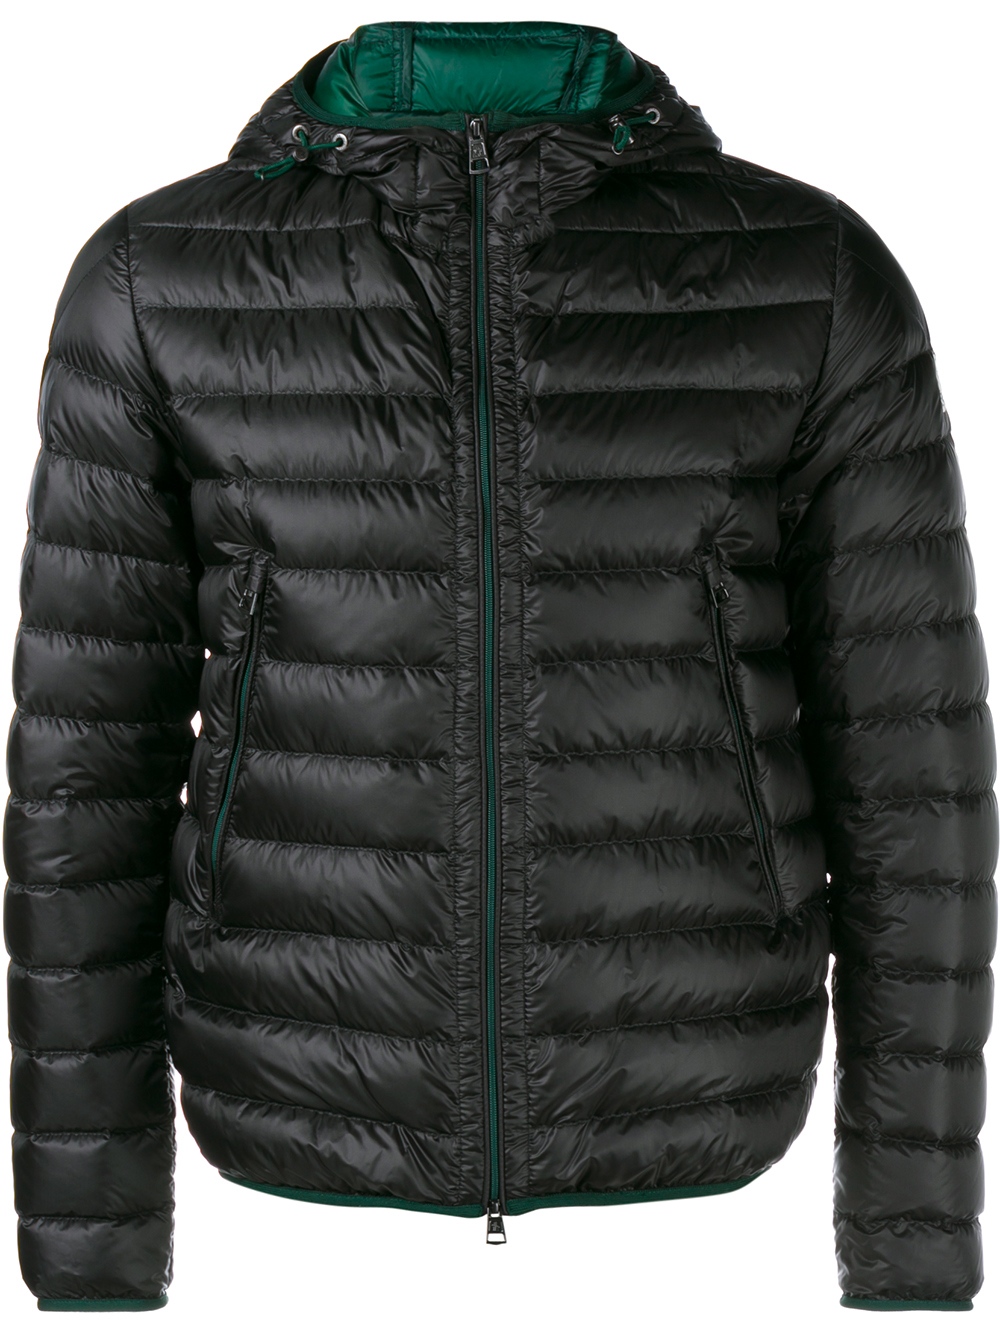 Down Feather Jacket Jackets Review